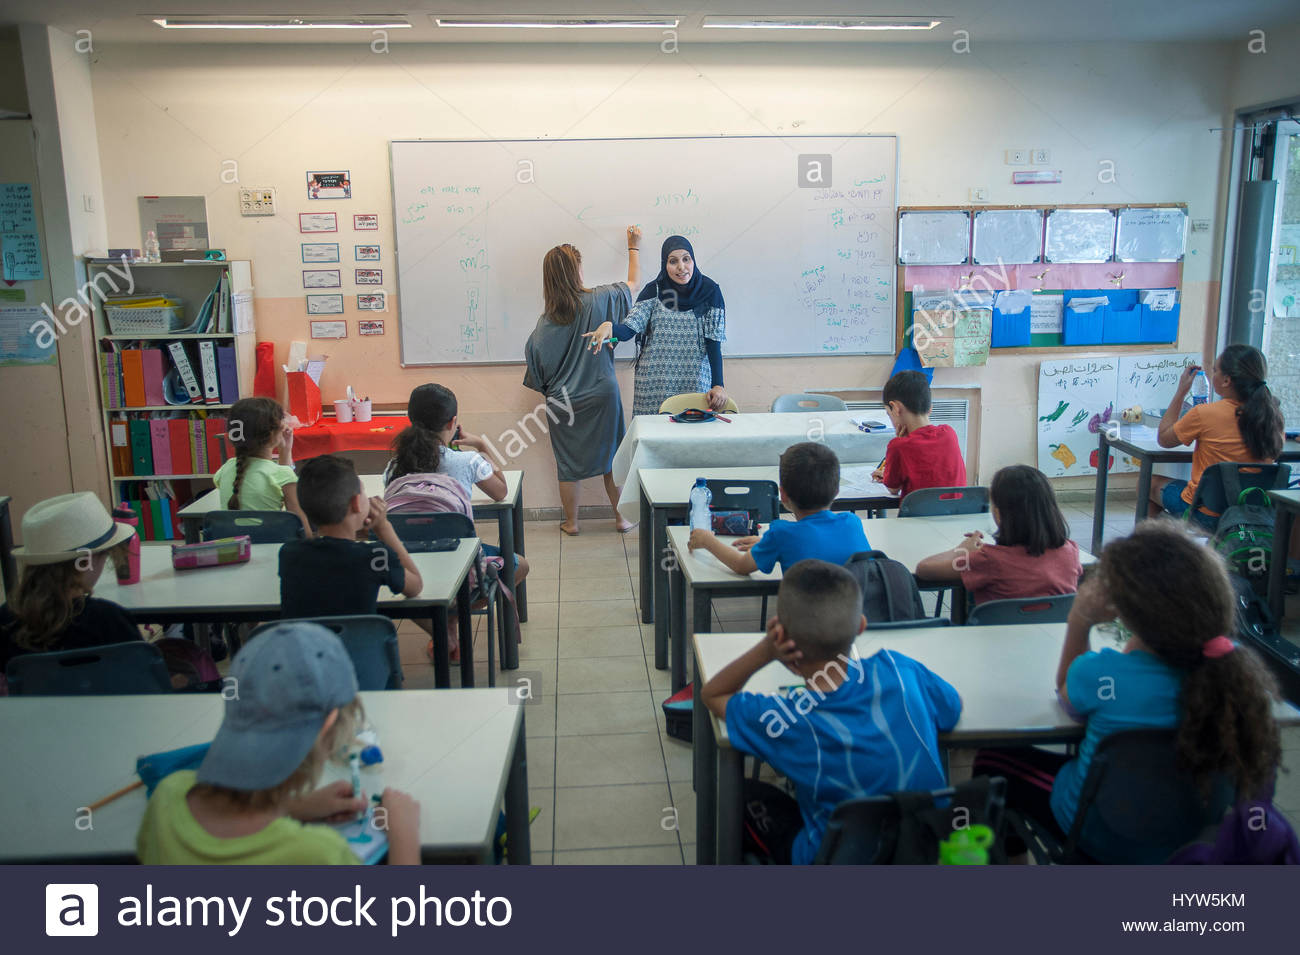 Alia Hussien addresses the class of 3rd Graders while her fellow teacher Efrat Toval writes on the black board. - Stock Image